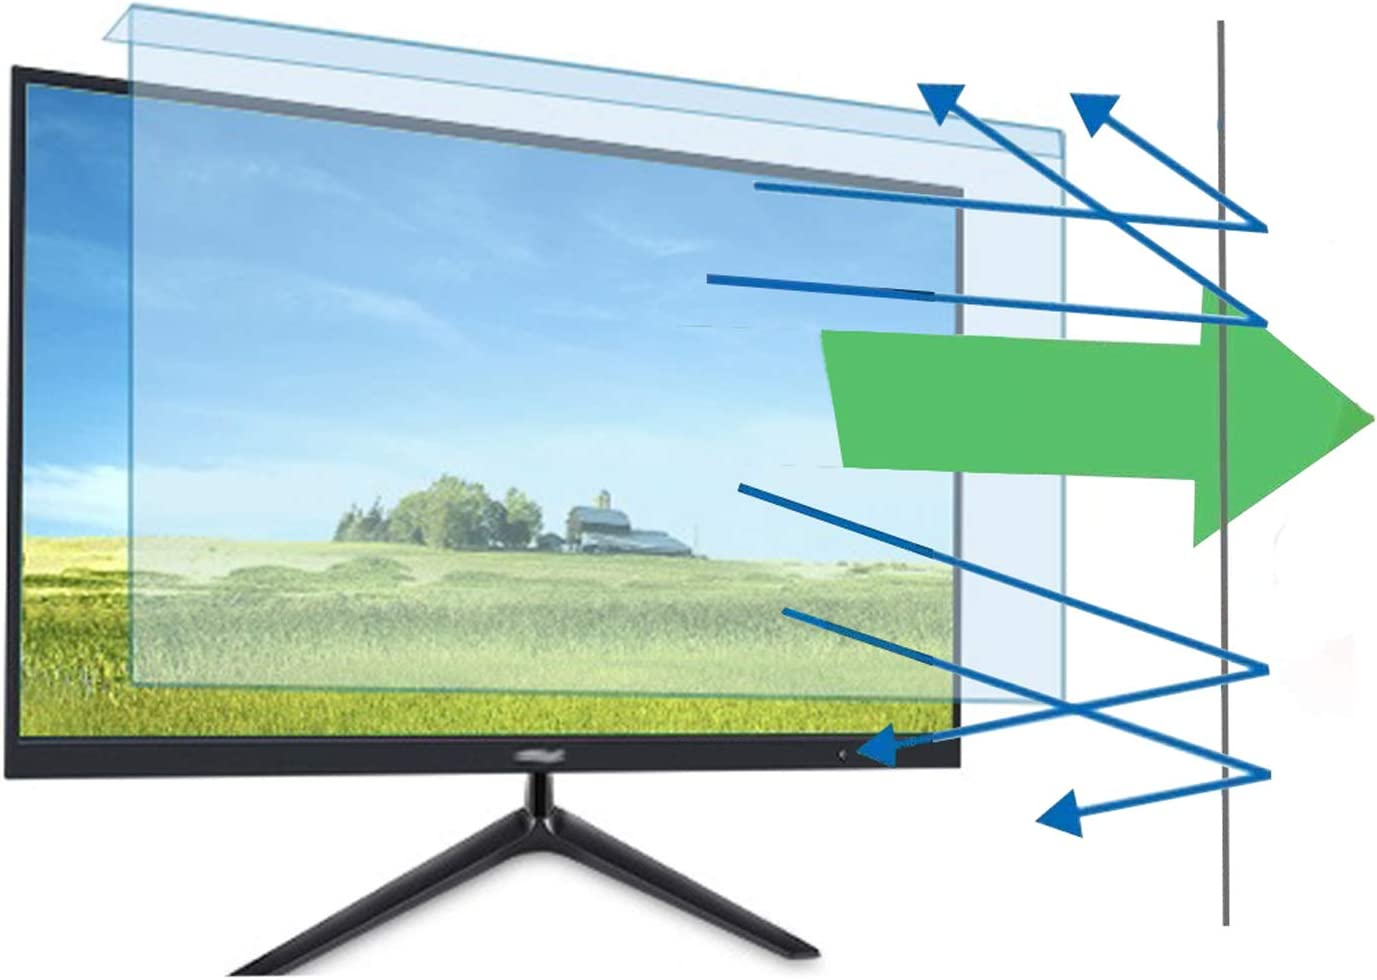 32 inch VIUAUAX Anti-Blue Light Monitor - TV Screen Protector and Damage Protection Panel (W 28.74